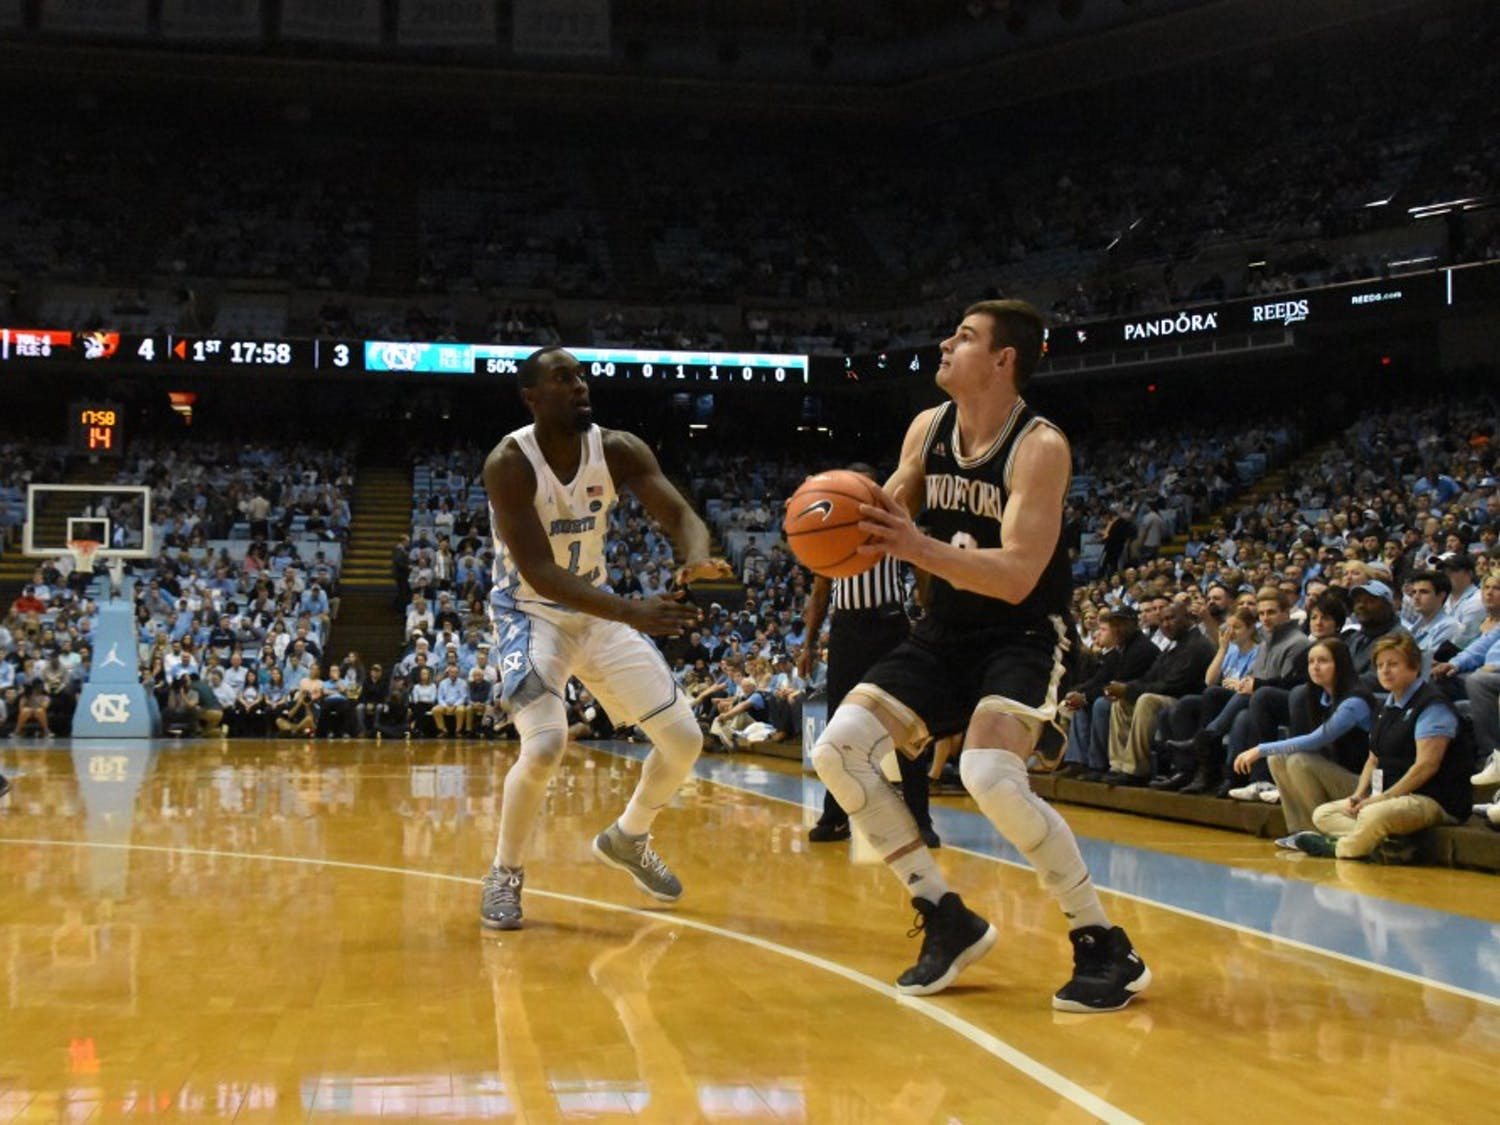 Wofford guard Fletcher Magee (3) prepares to shoot as North Carolina wing Theo Pinson (1) closes in on him during a Dec. 20 game in the Smith Center.